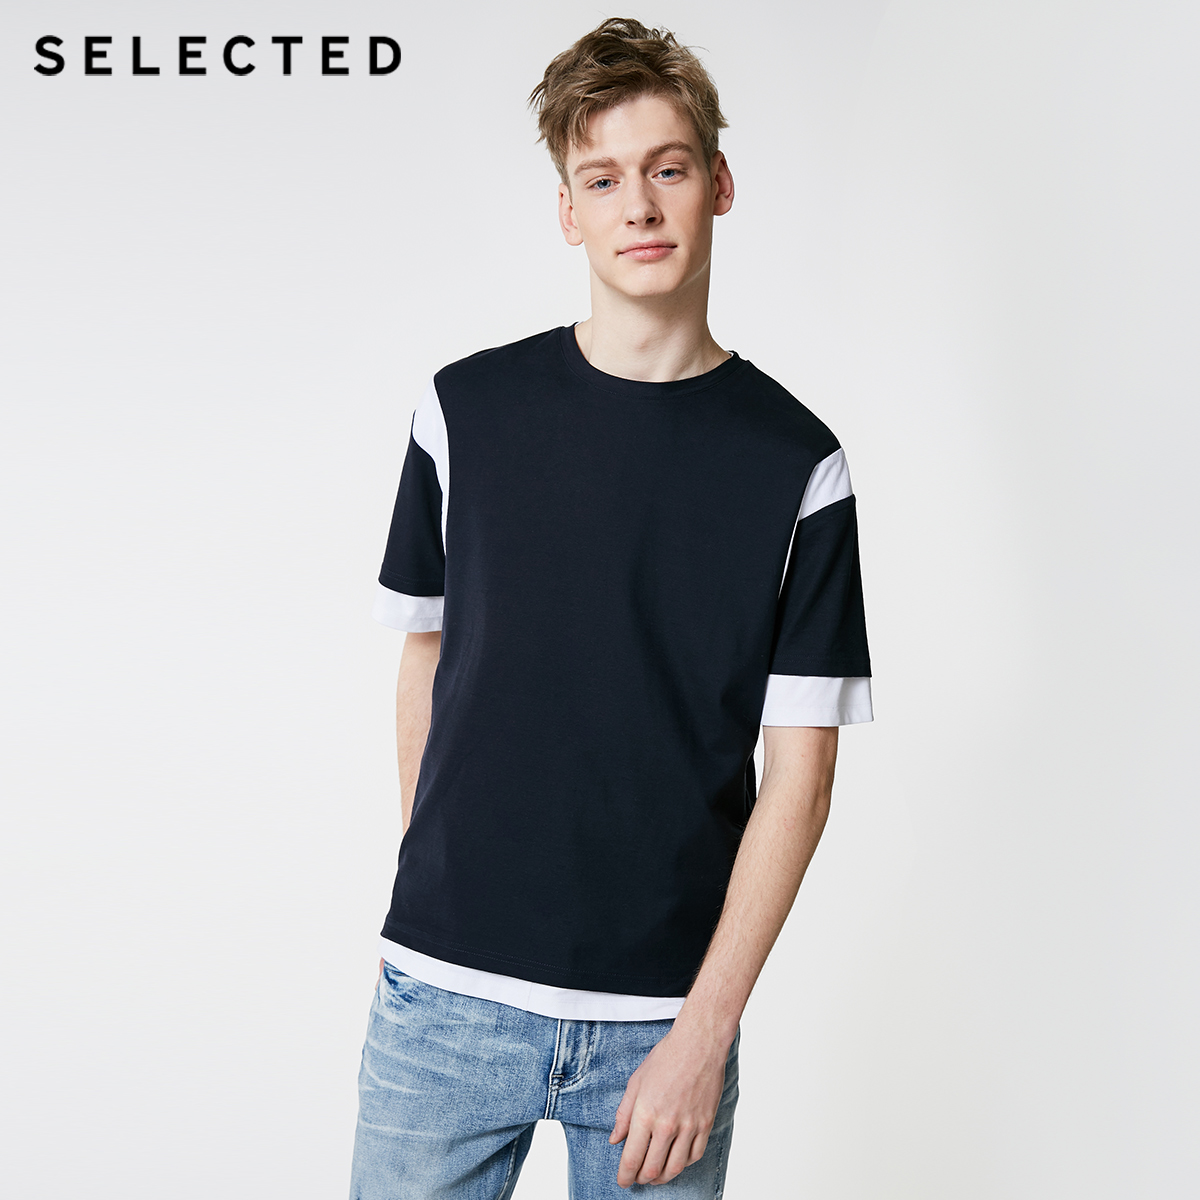 SELECTED Men's 100% Cotton Spliced Colored Blocks Short-sleeved T-shirt S|419201502